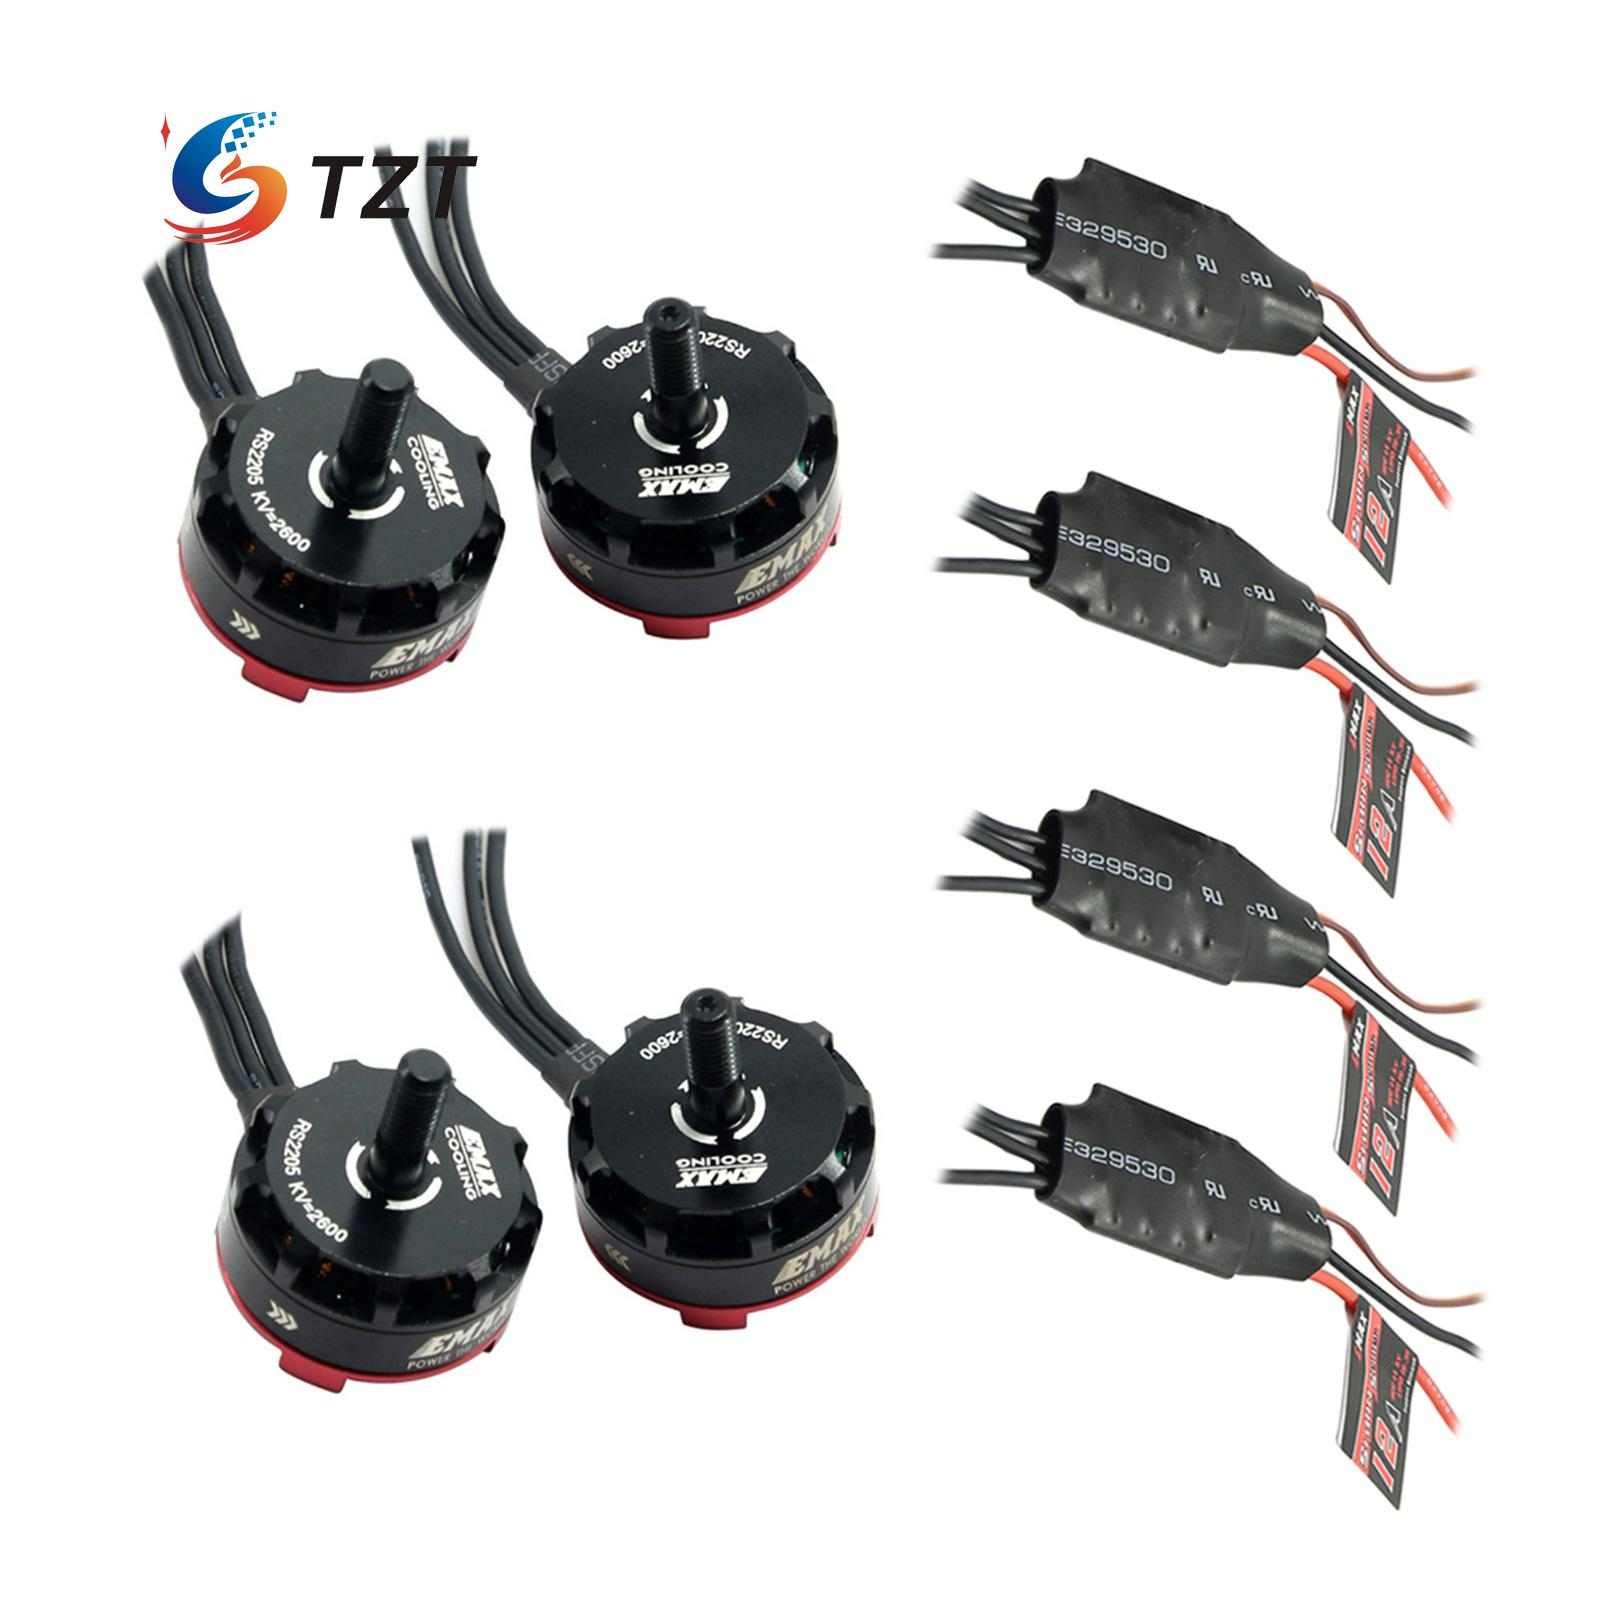 Emax RS2205 2300KV/2600KV Racing Edition Motor with Simonk 12A ESC for FPV QVA250 Quadcopter Multicopter - 4 Pack touchstone teacher s edition 4 with audio cd